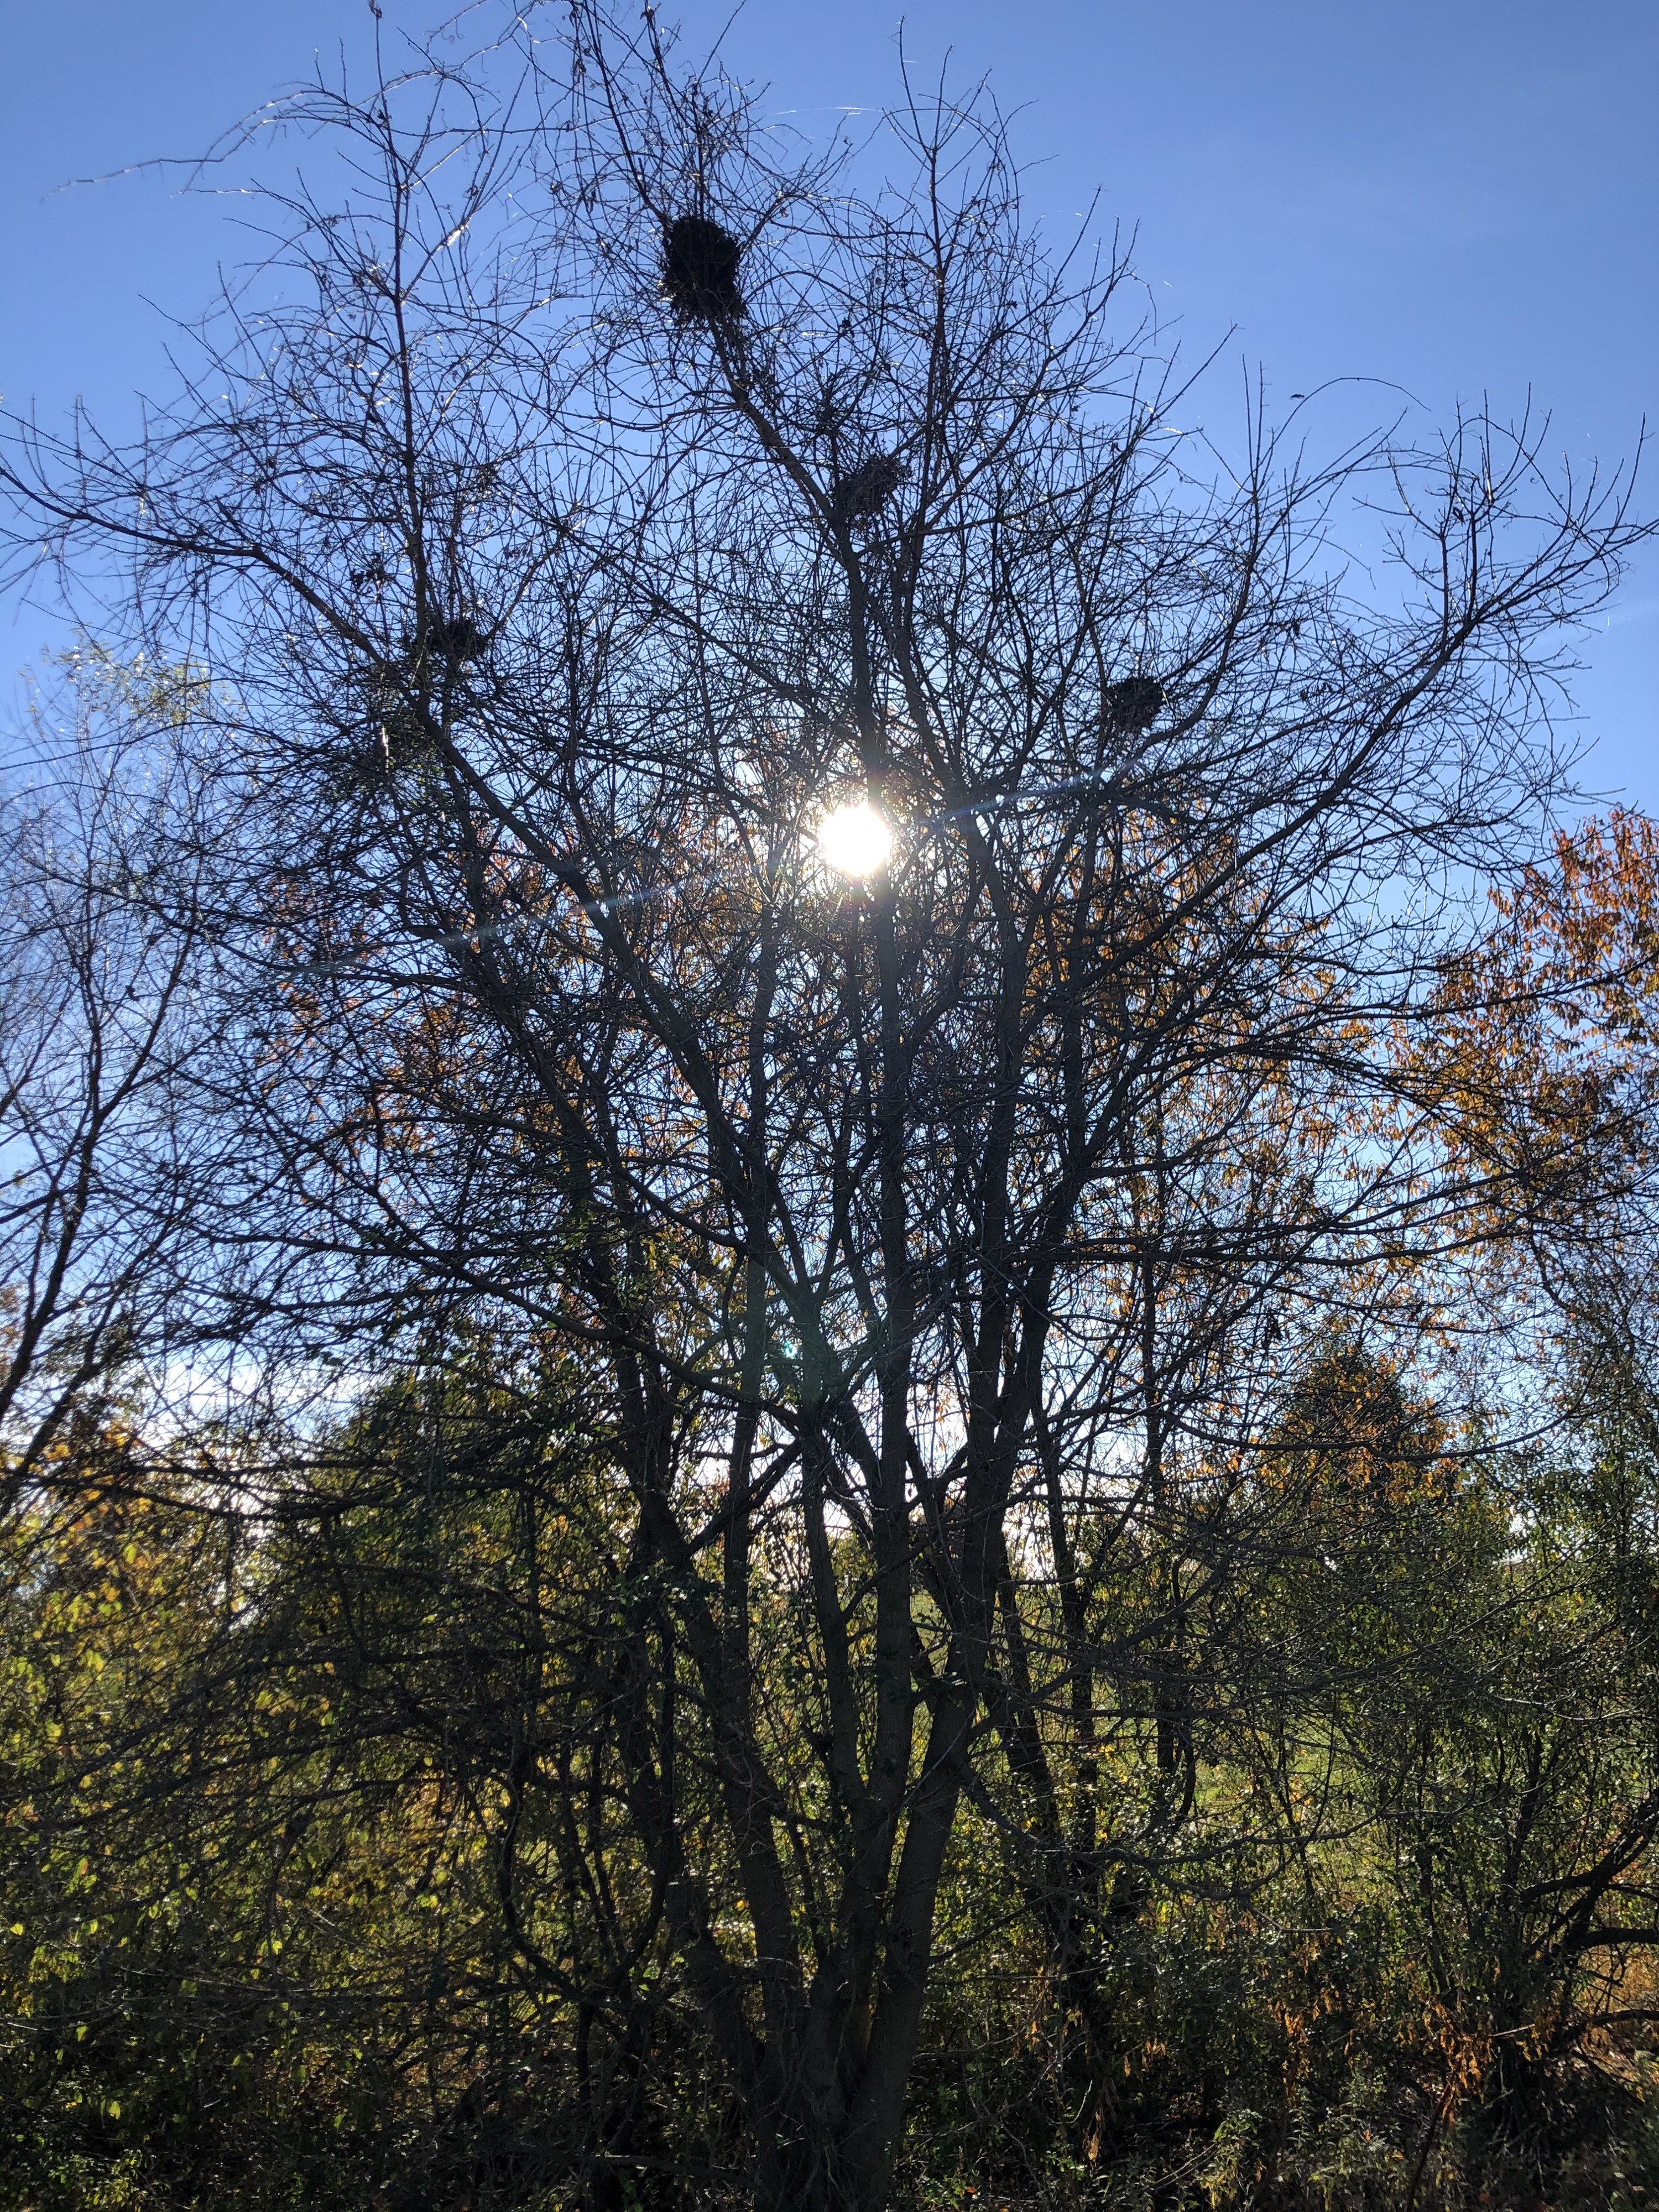 A photo of a leafless tree, with several thin shooting branches, as the sun peeks through the top.